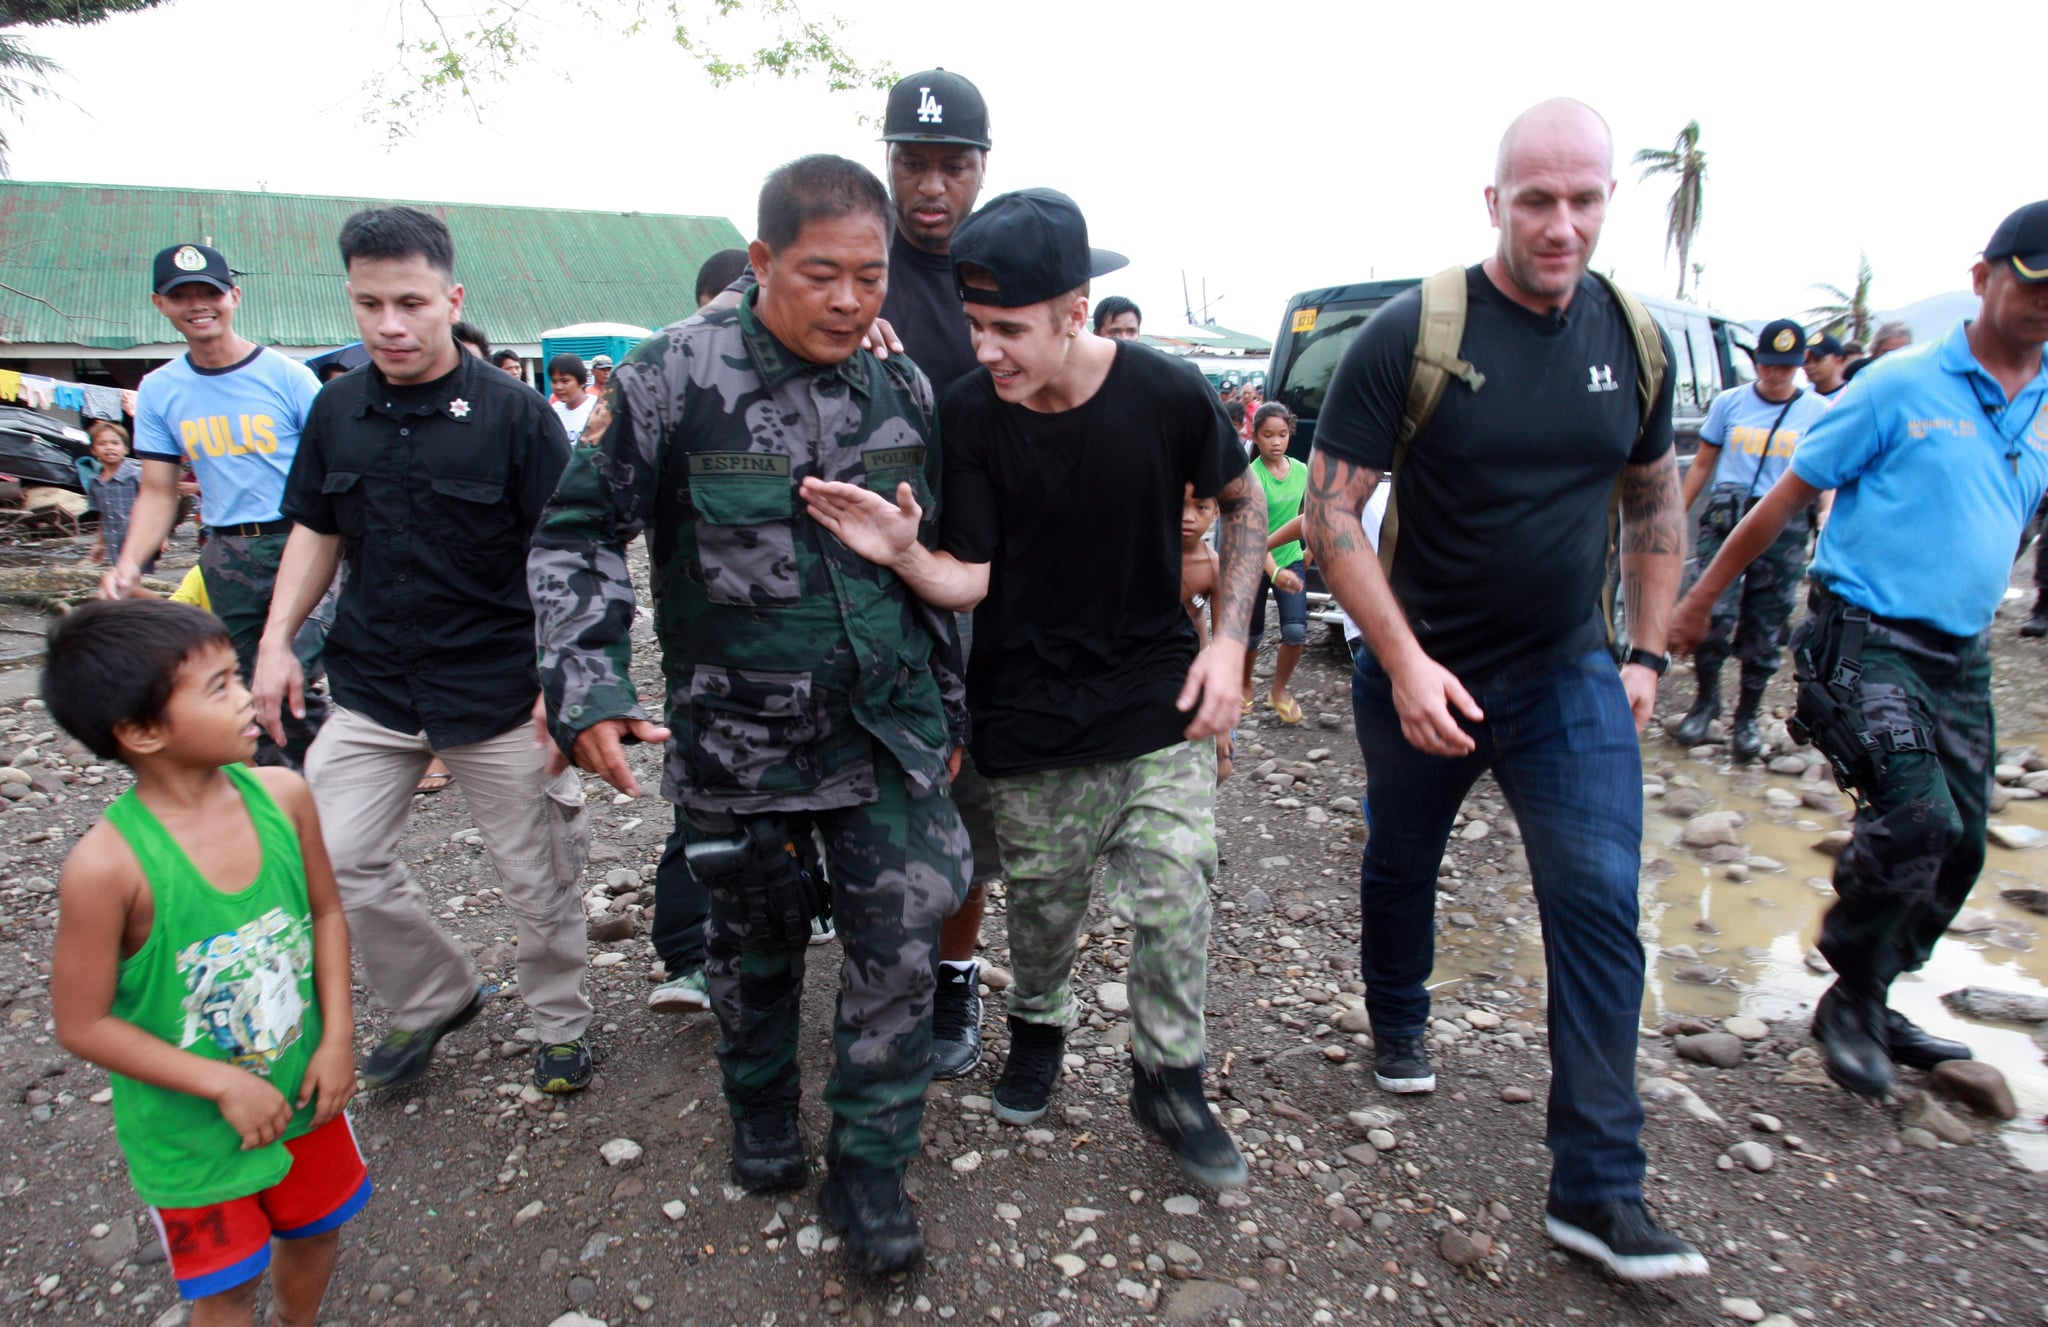 "Source: Getty/Jeoffrey Maitem  Dec. 10, 2013 The pop star got some much-needed good press when he visited an area of the Philippines that was left devastated by the recent typhoon. He spent the day meeting with children and playing basketball with a group of teenagers.  Dec. 24, 2013 Justin sent his fans into chaos when he announced via Twitter that he was ""officially retiring."" However, he quickly backtracked and claimed it was just a joke. A source close to the singer claimed that he did it to show ""how quickly news spreads without anyone vetting if it's true or not."" Dec. 25, 2013 On Christmas Day, Justin released Believe, the movie followup to his wildly successful first documentary, Never Say Never. However, the film was considered a bomb for the pop star, only earning $3.1 million in its opening week. For the sake of comparison, Never Say Never earned $29.5 million its opening weekend. Jan. 10, 2014 Justin allegedly egged a neighbor's home inside his ritzy Calabasas neighborhood. The neighbor released a video of the incident, which contains the voice of a young man who sounds like Justin cursing out his neighbor while throwing eggs. The neighbor called the cops on Justin and reported $20,000 in damage. Jan. 14, 2014 The star's Calabasas home was raided as part of a police investigation related to his alleged egging incident. Justin's friend Lil Za was arrested in Bieber's home for felony drug possession as part of the raid. He was released a few hours later but was arrested once again after he broke a phone inside the jail. Jan. 21, 2014 Justin reportedly spent $75,000 at a strip club in Miami while celebrating the birthday of Love & Hip Hop Atlanta star Lil Scrappy."